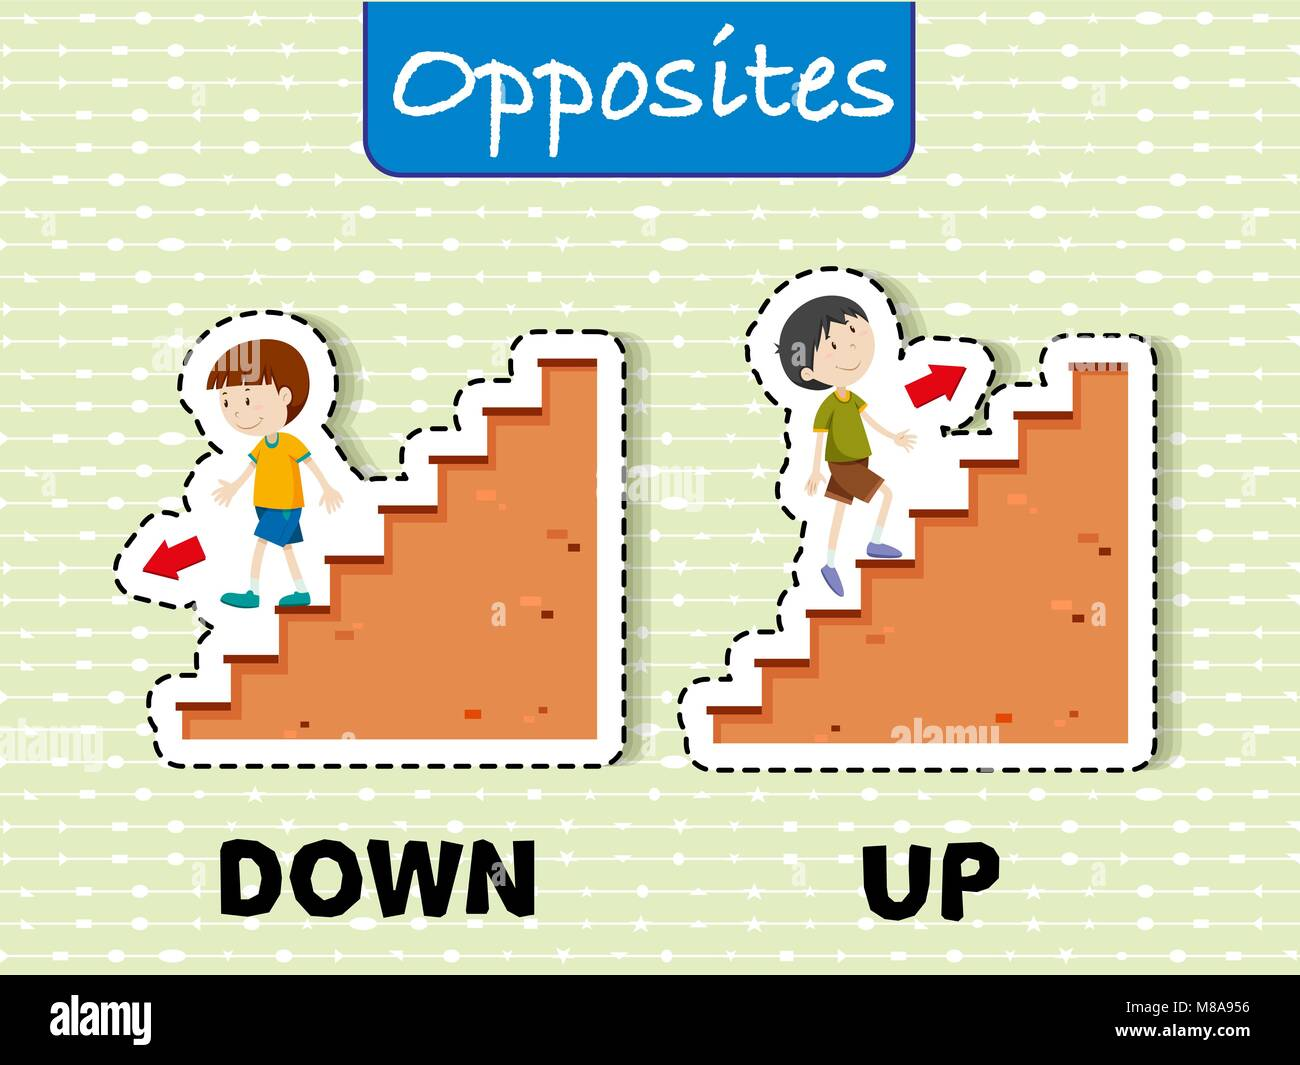 Opposite Words For Down And Up Illustration Stock Vector